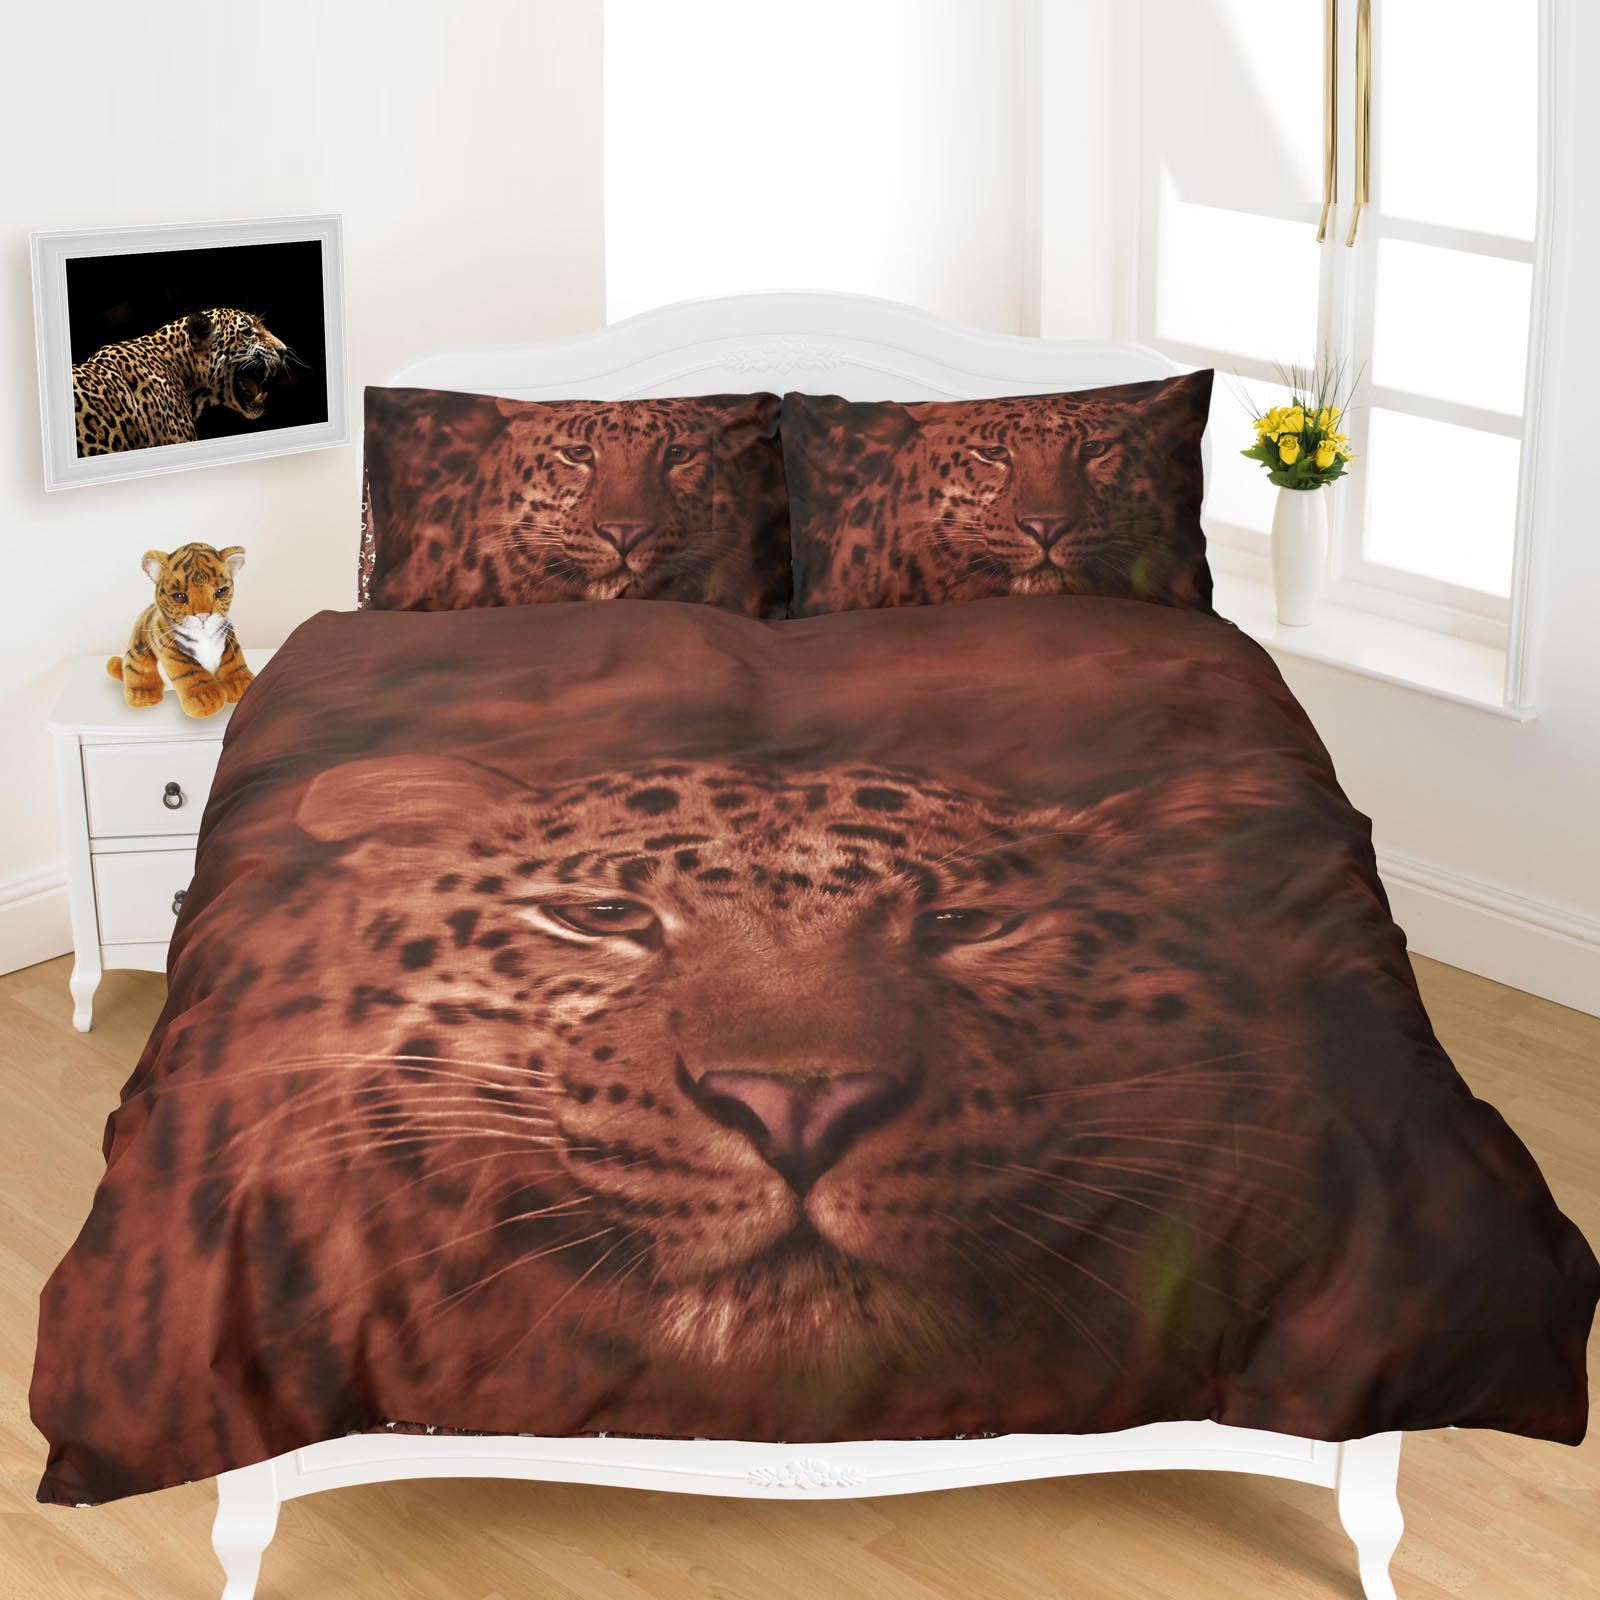 3d animal imprim couette housse de couette poly coton. Black Bedroom Furniture Sets. Home Design Ideas